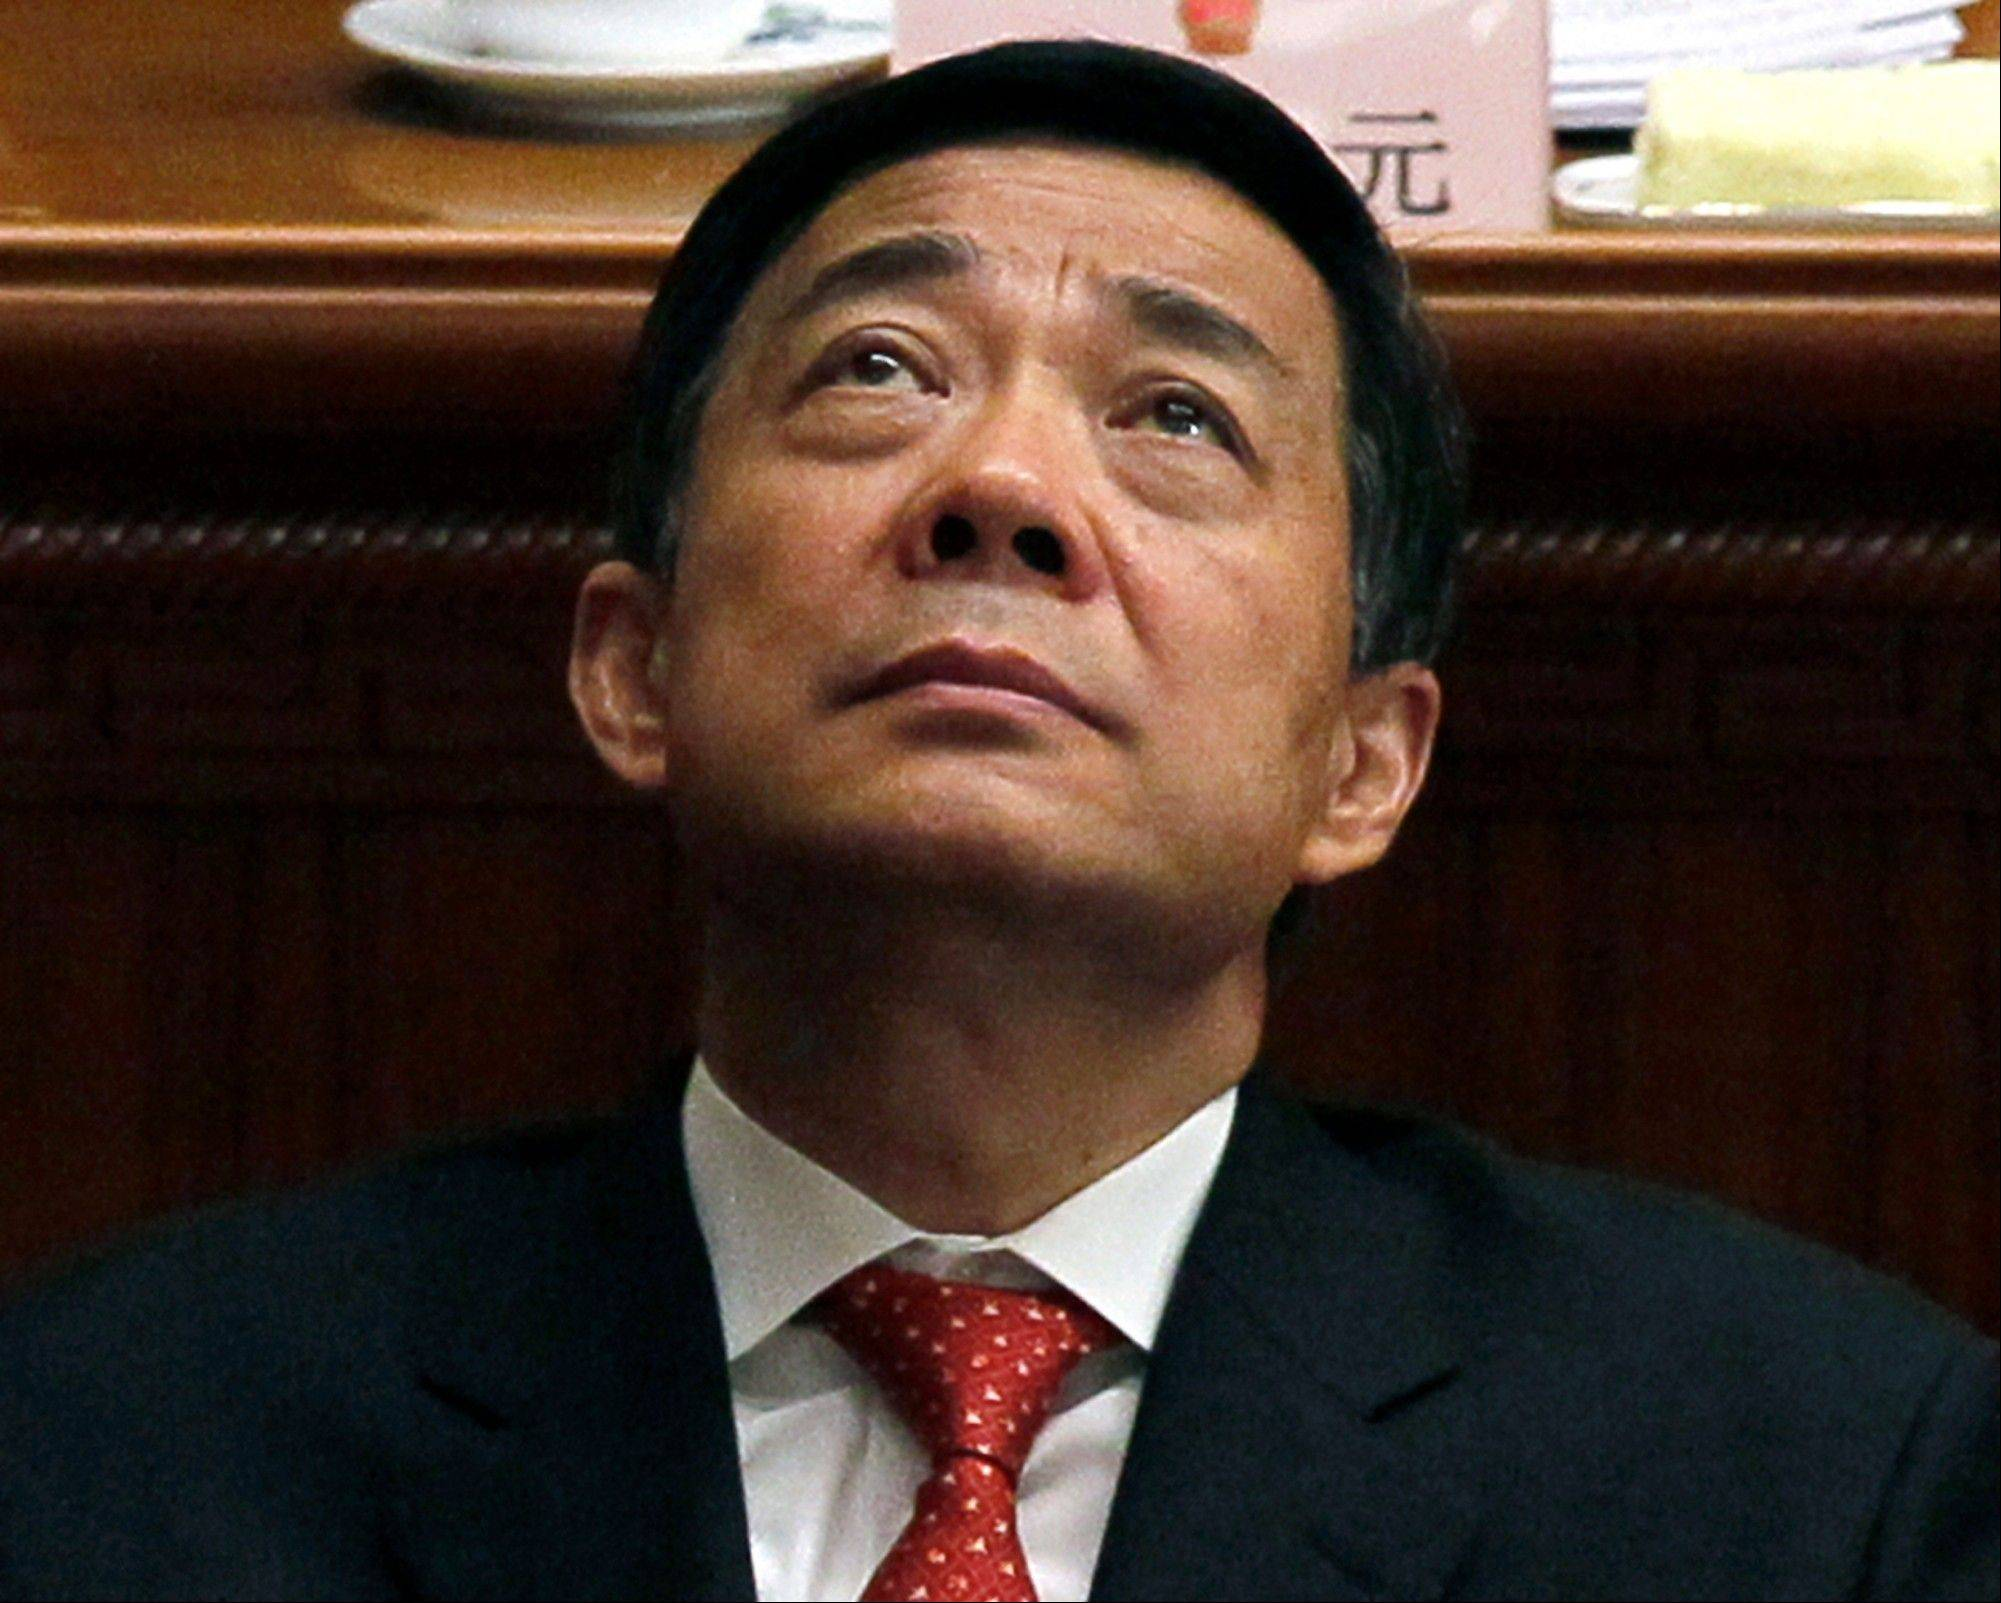 Bo Xilai, a rising Communist Party star who fell from power last year, will go on trial Thursday on corruption charges, a court announced on Sunday that put China's new leaders on course to wrap up a festering scandal as they try to cement their authority.